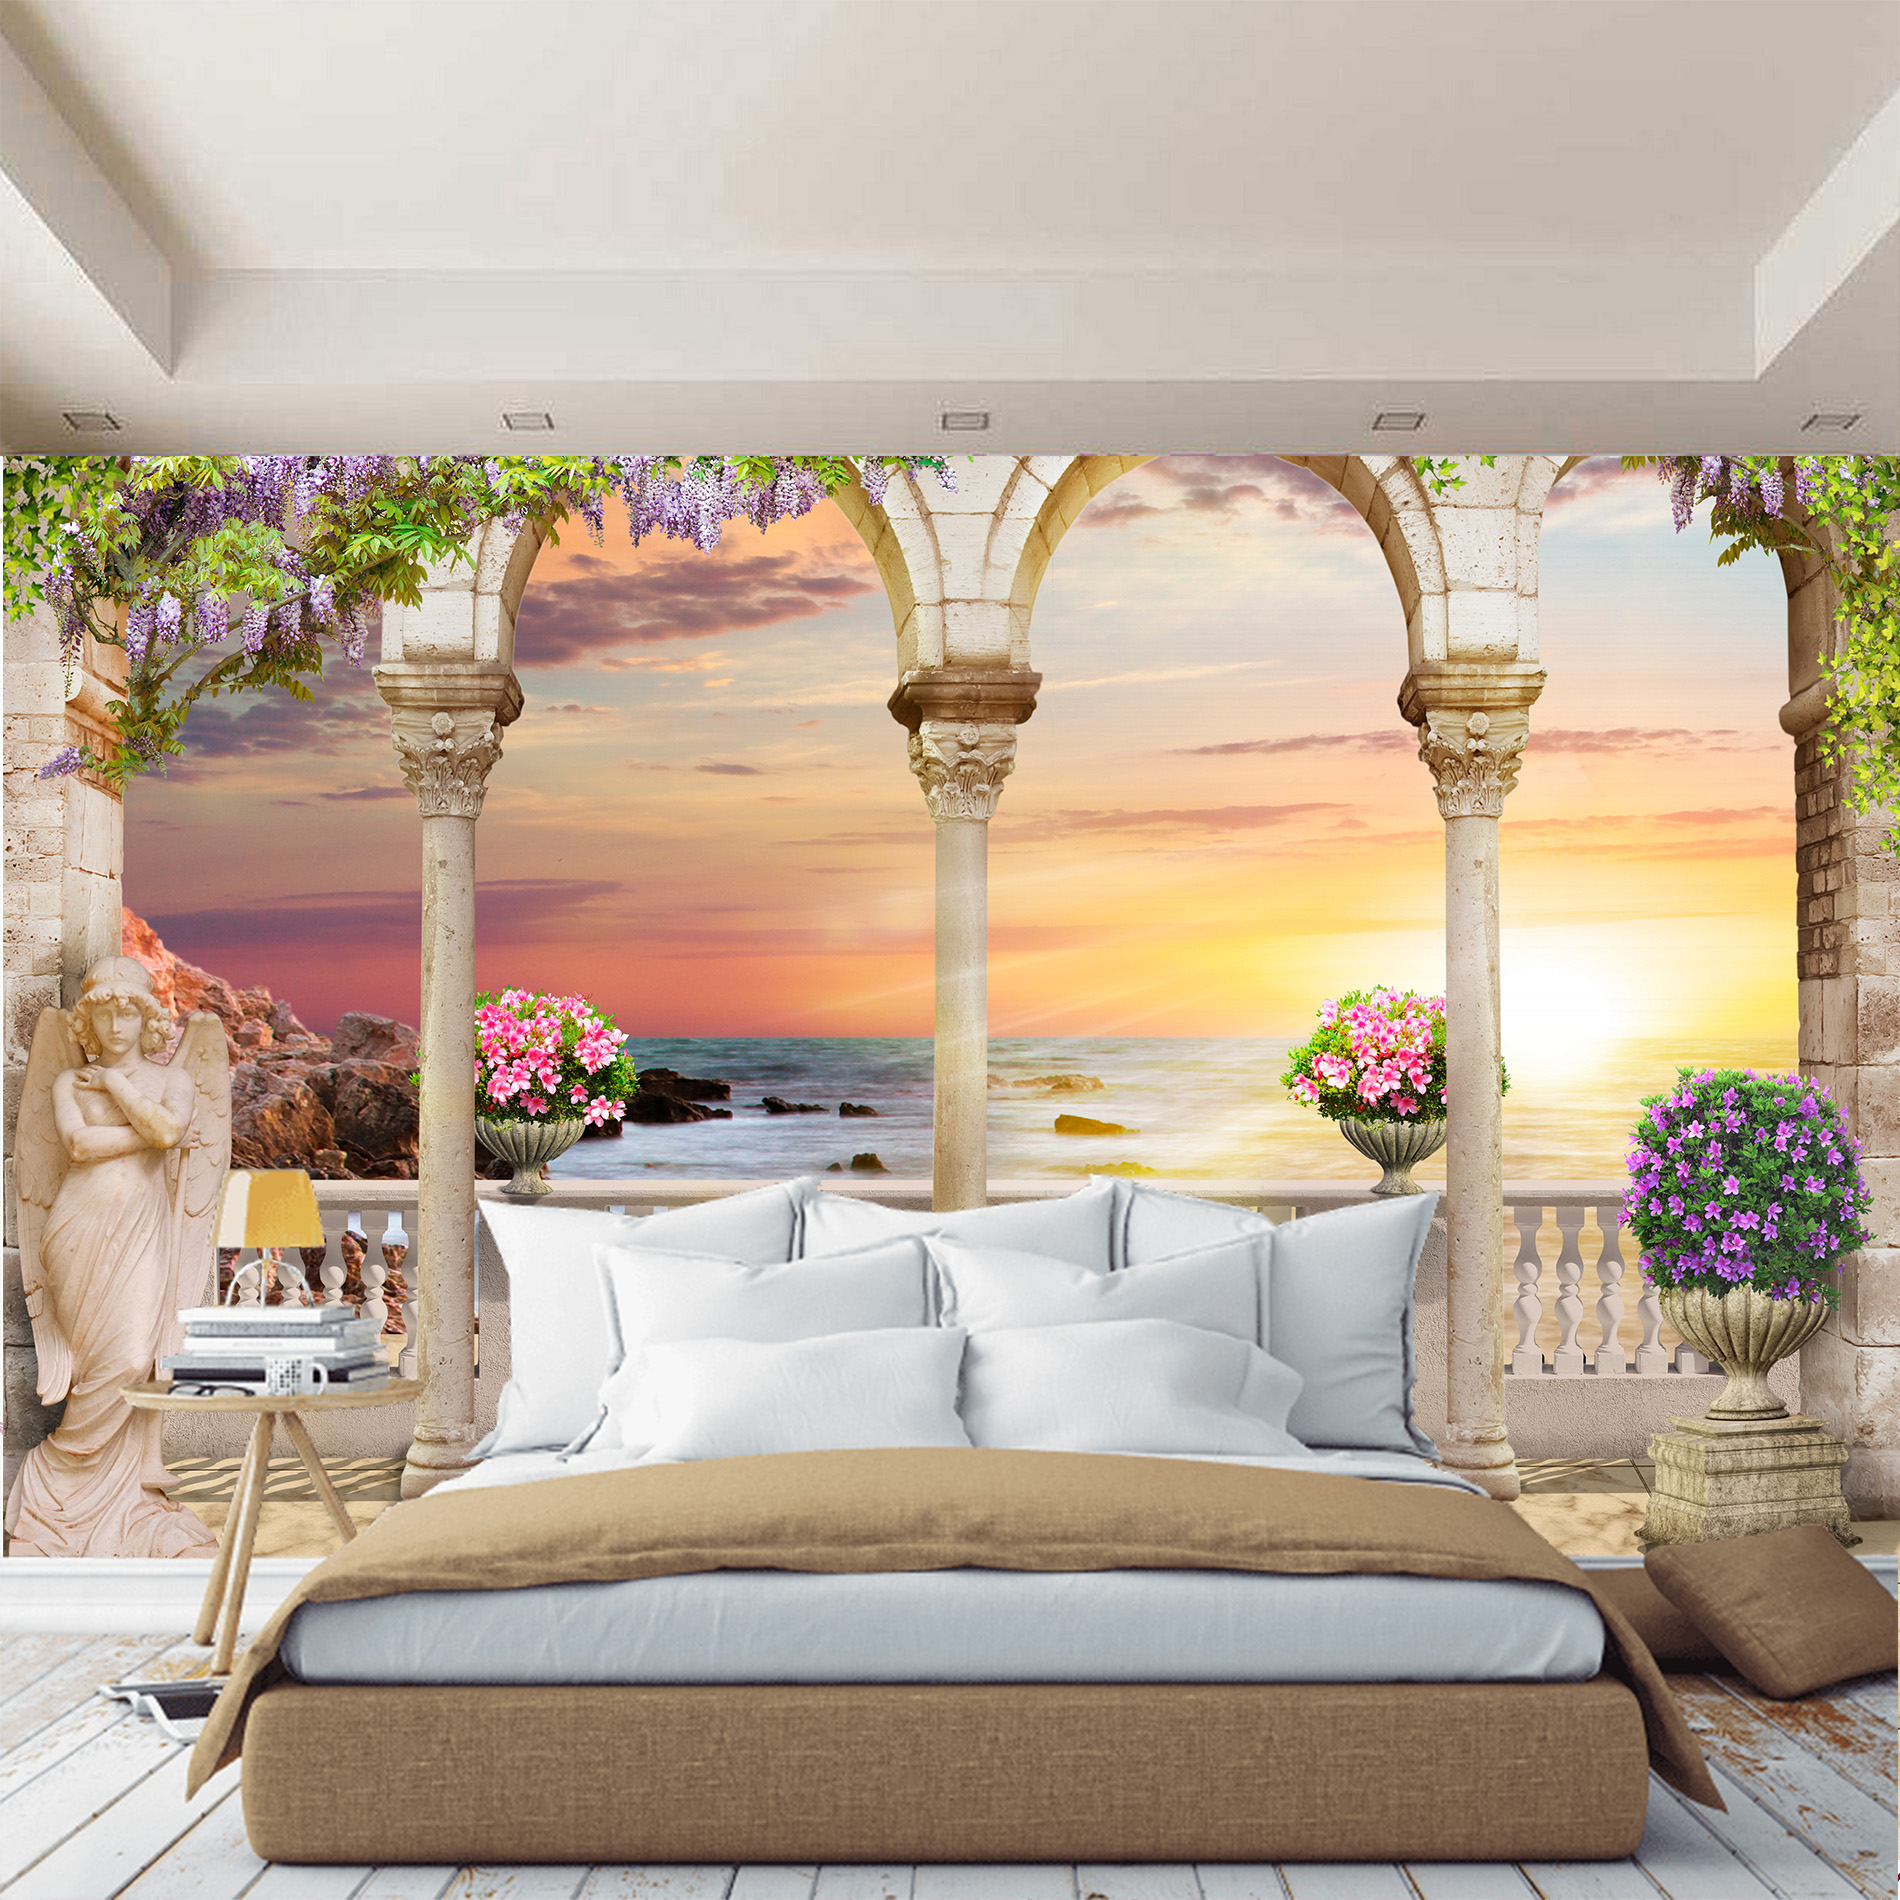 Murals columns 3D wall mural, wallpaper for hall, kitchen, bedroom, murals expanding space image